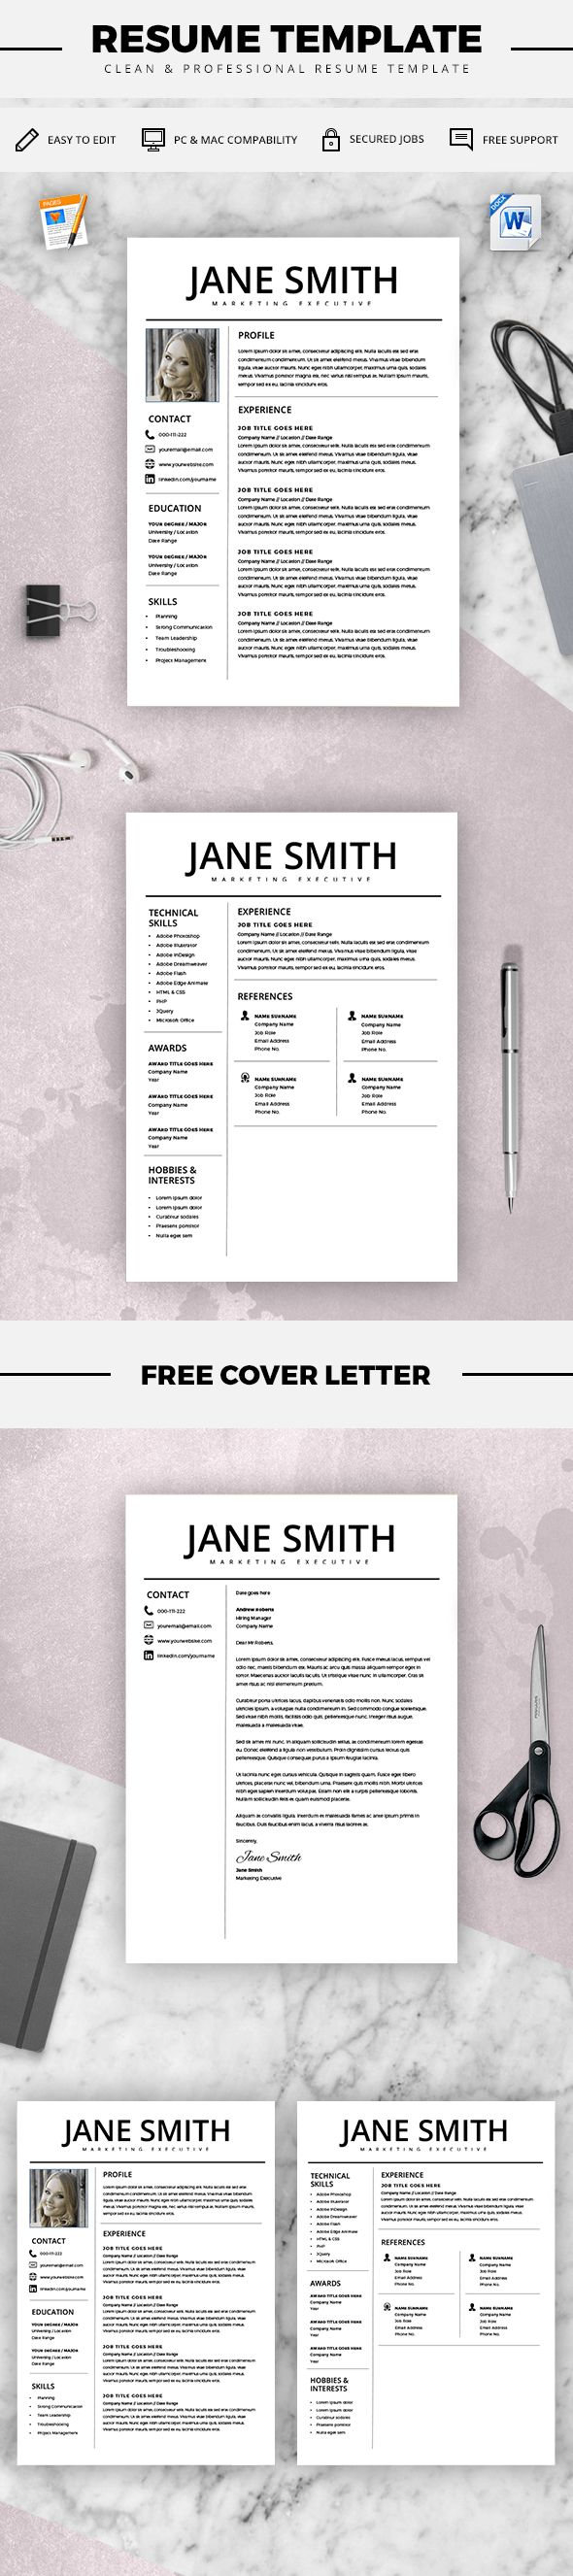 Unusual 10 Steps To Writing A Resume Tiny 1099 Int Template Flat 10x13 Envelope Template 13 Birthday Invitation Templates Old 1st Job Resume Samples Orange1st Place Certificate Template 25  Best Ideas About Resume Templates Word On Pinterest | Resume ..